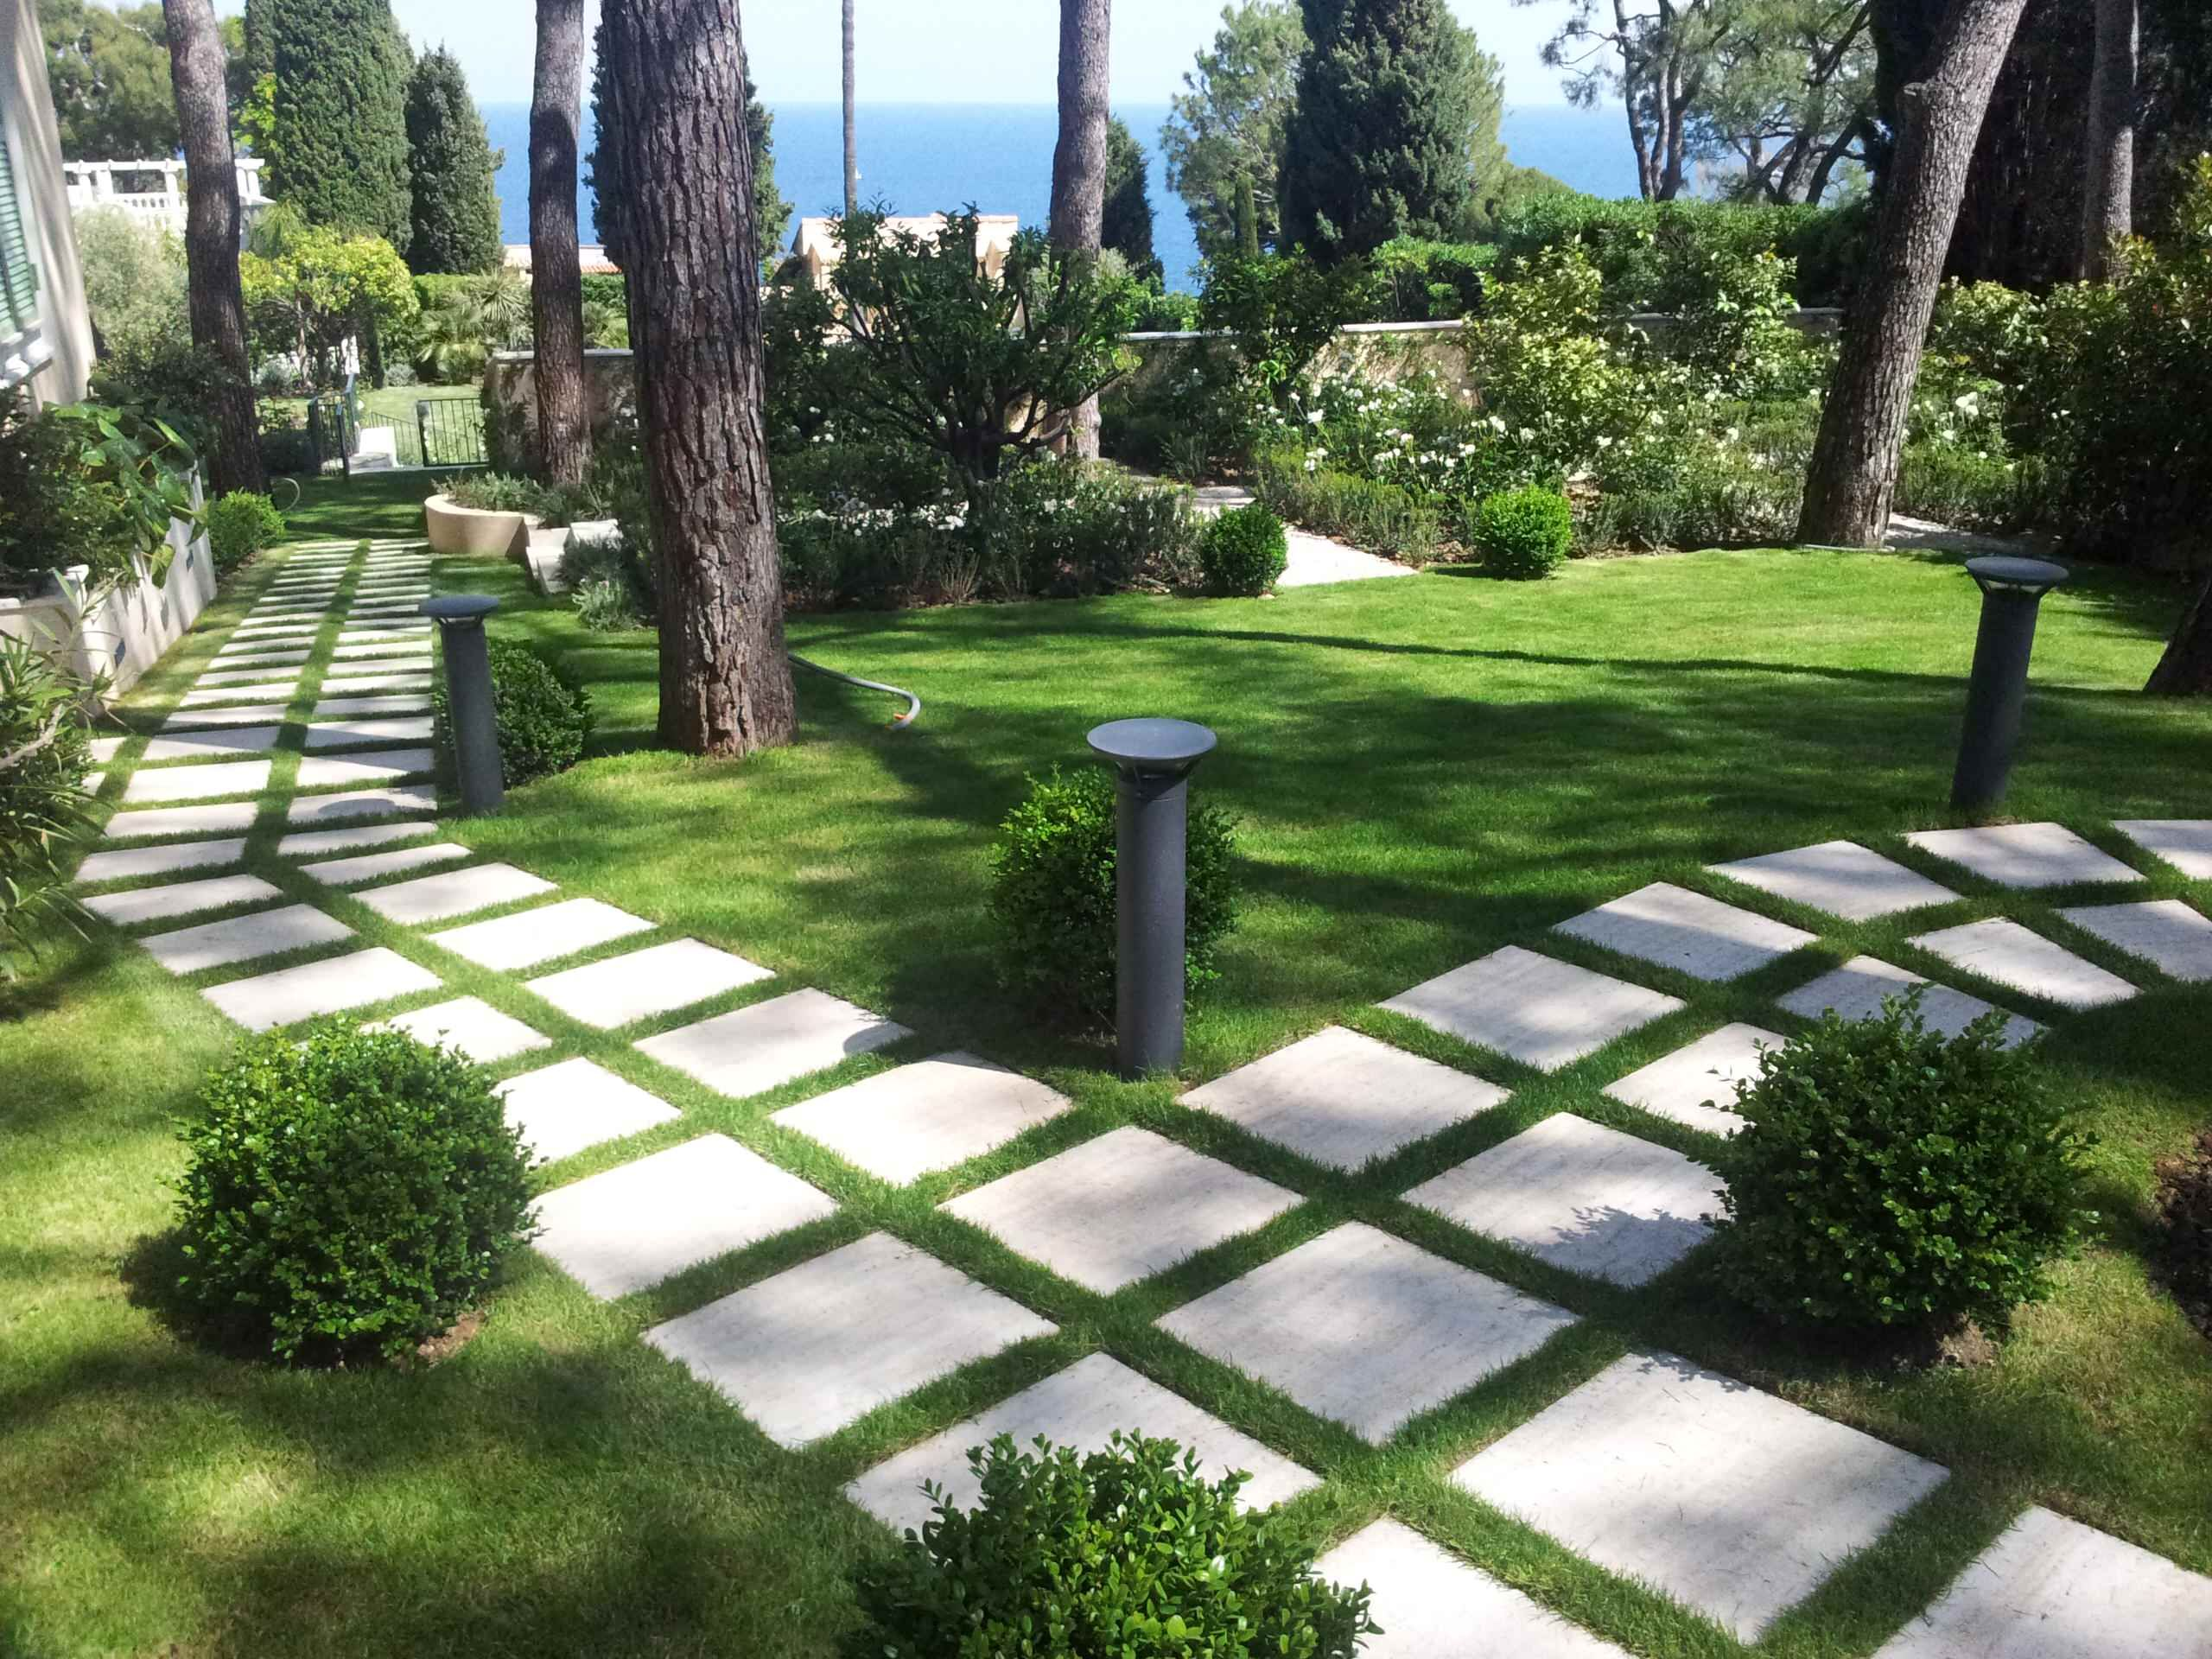 dramatic landscape design using paver walkway ideas awesome landscape design with paver walkway ideas and - Paver Walkway Design Ideas